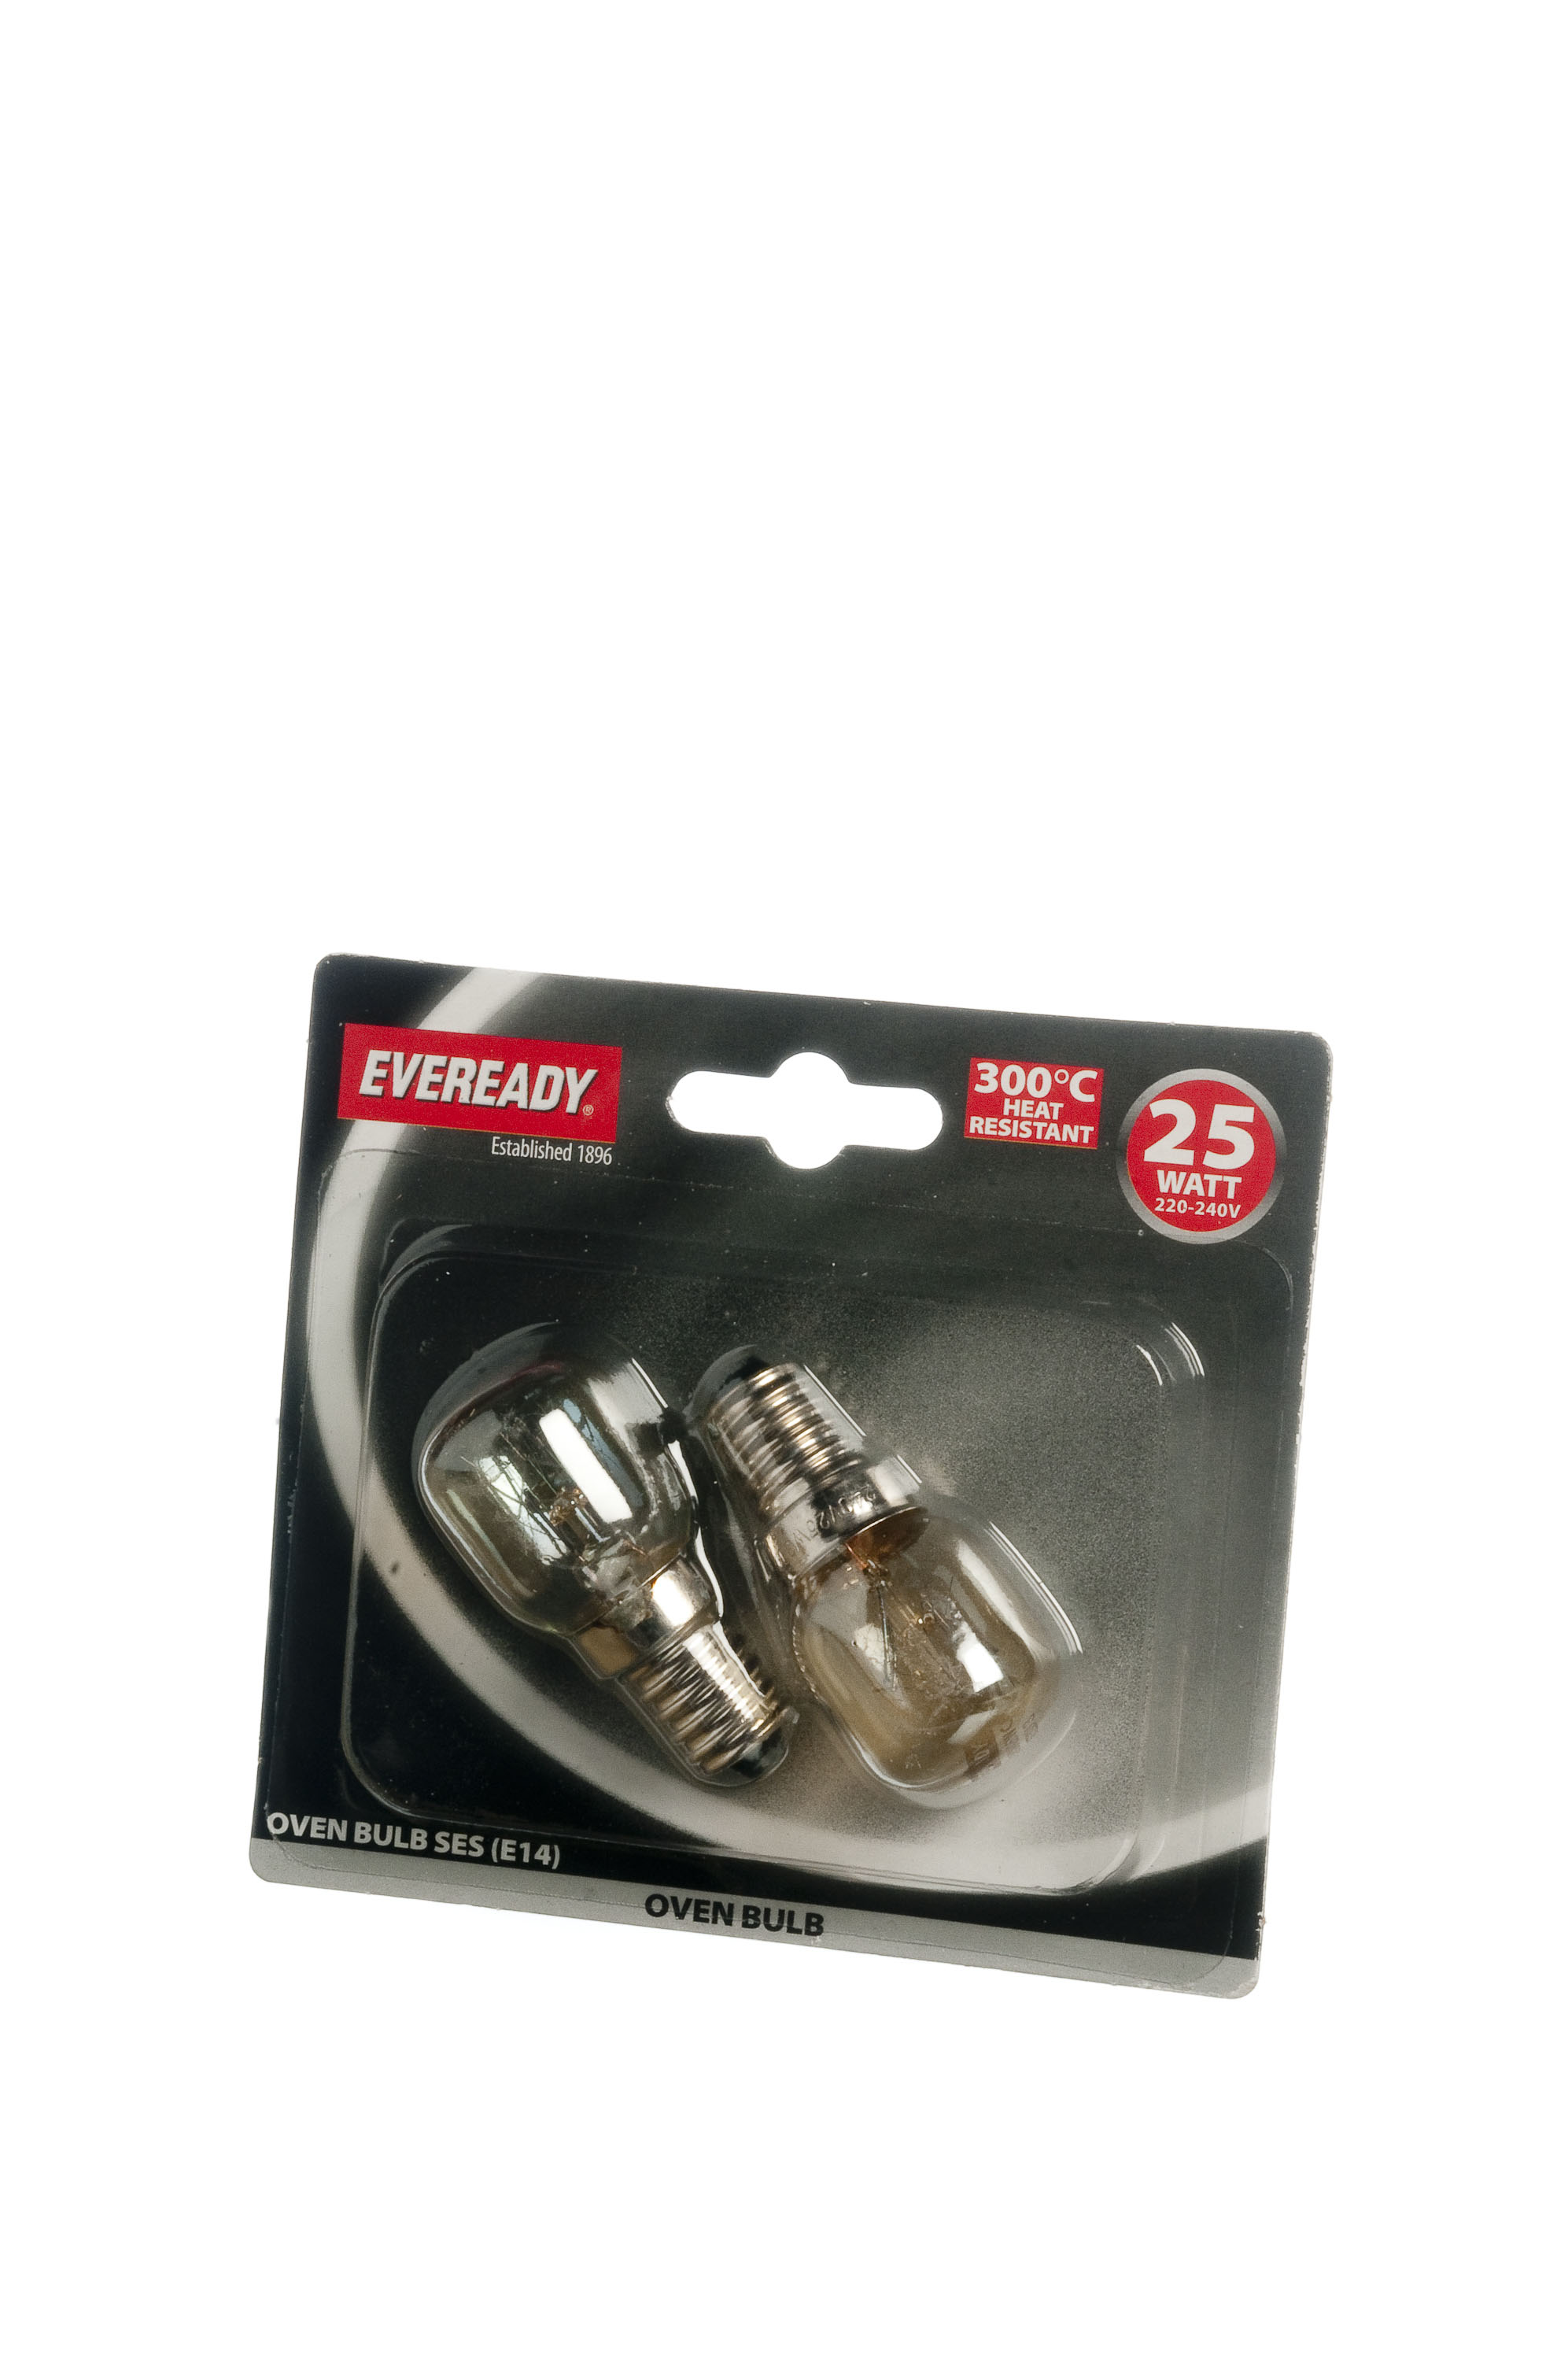 Eveready Oven Lamp 25w SES